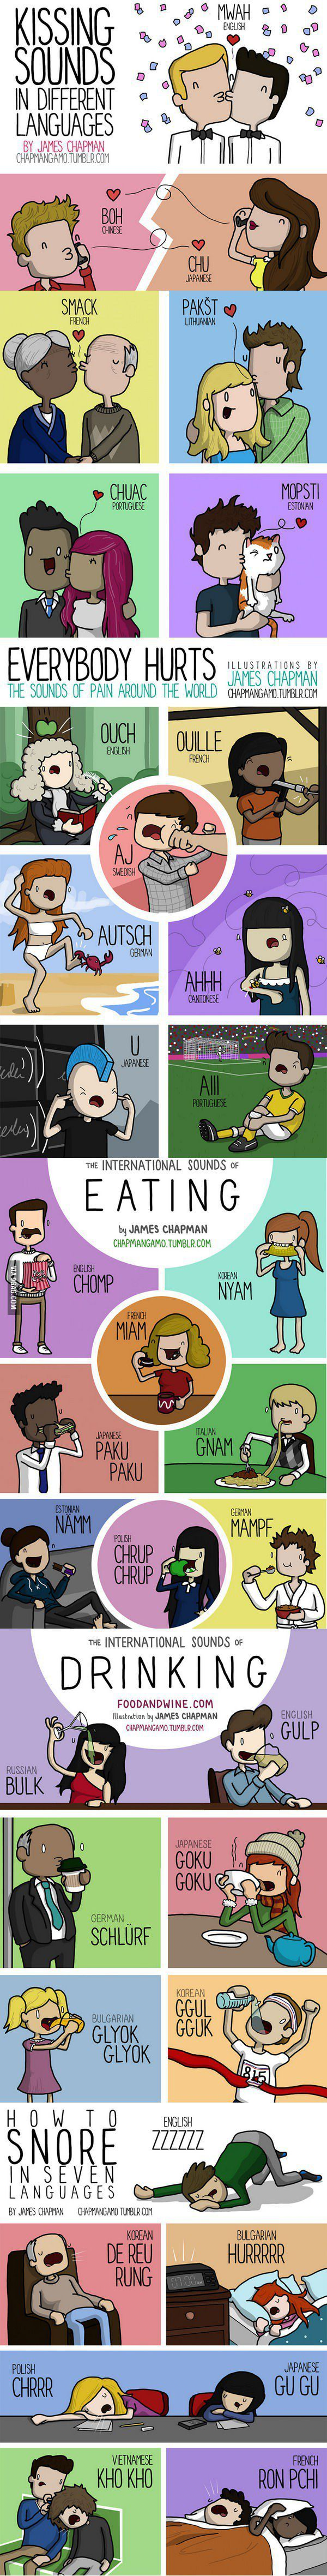 How Kissing, Eating, Drinking Snoring, Hurts and Other Things Sound In Different Languages